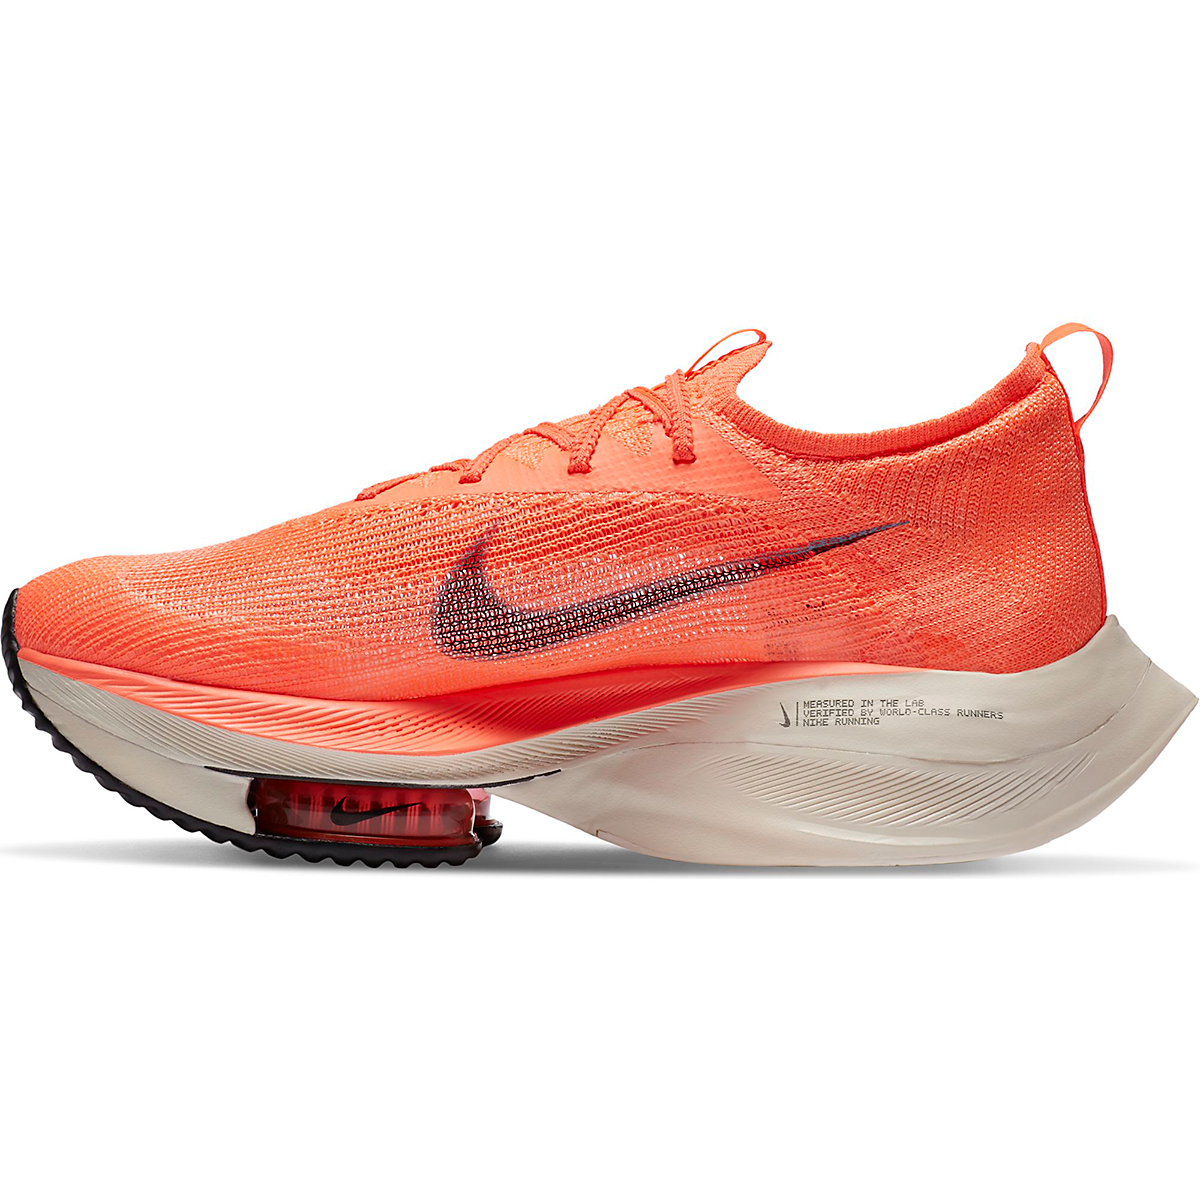 Men's Nike Air Zoom Alphafly NEXT% Running Shoe - Color: Bright Mango/Citron Pulse - Size: 6 - Width: Regular, Bright Mango/Citron Pulse, large, image 2